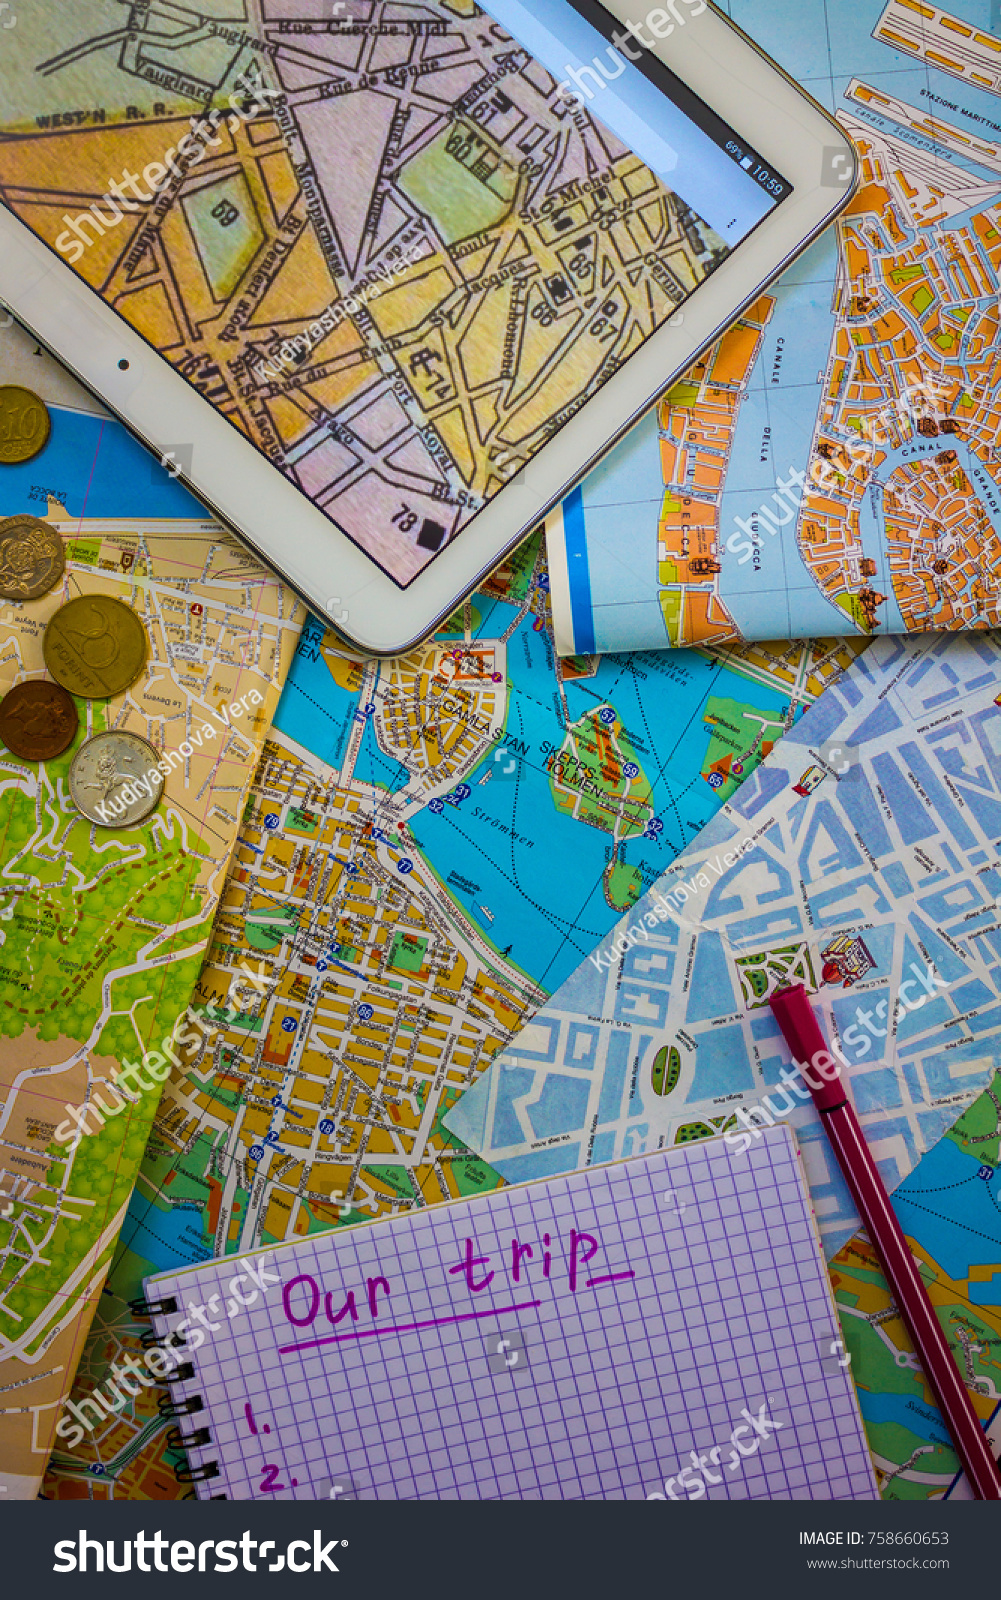 tablet with a map of paris maps of european cities a simple notepad and